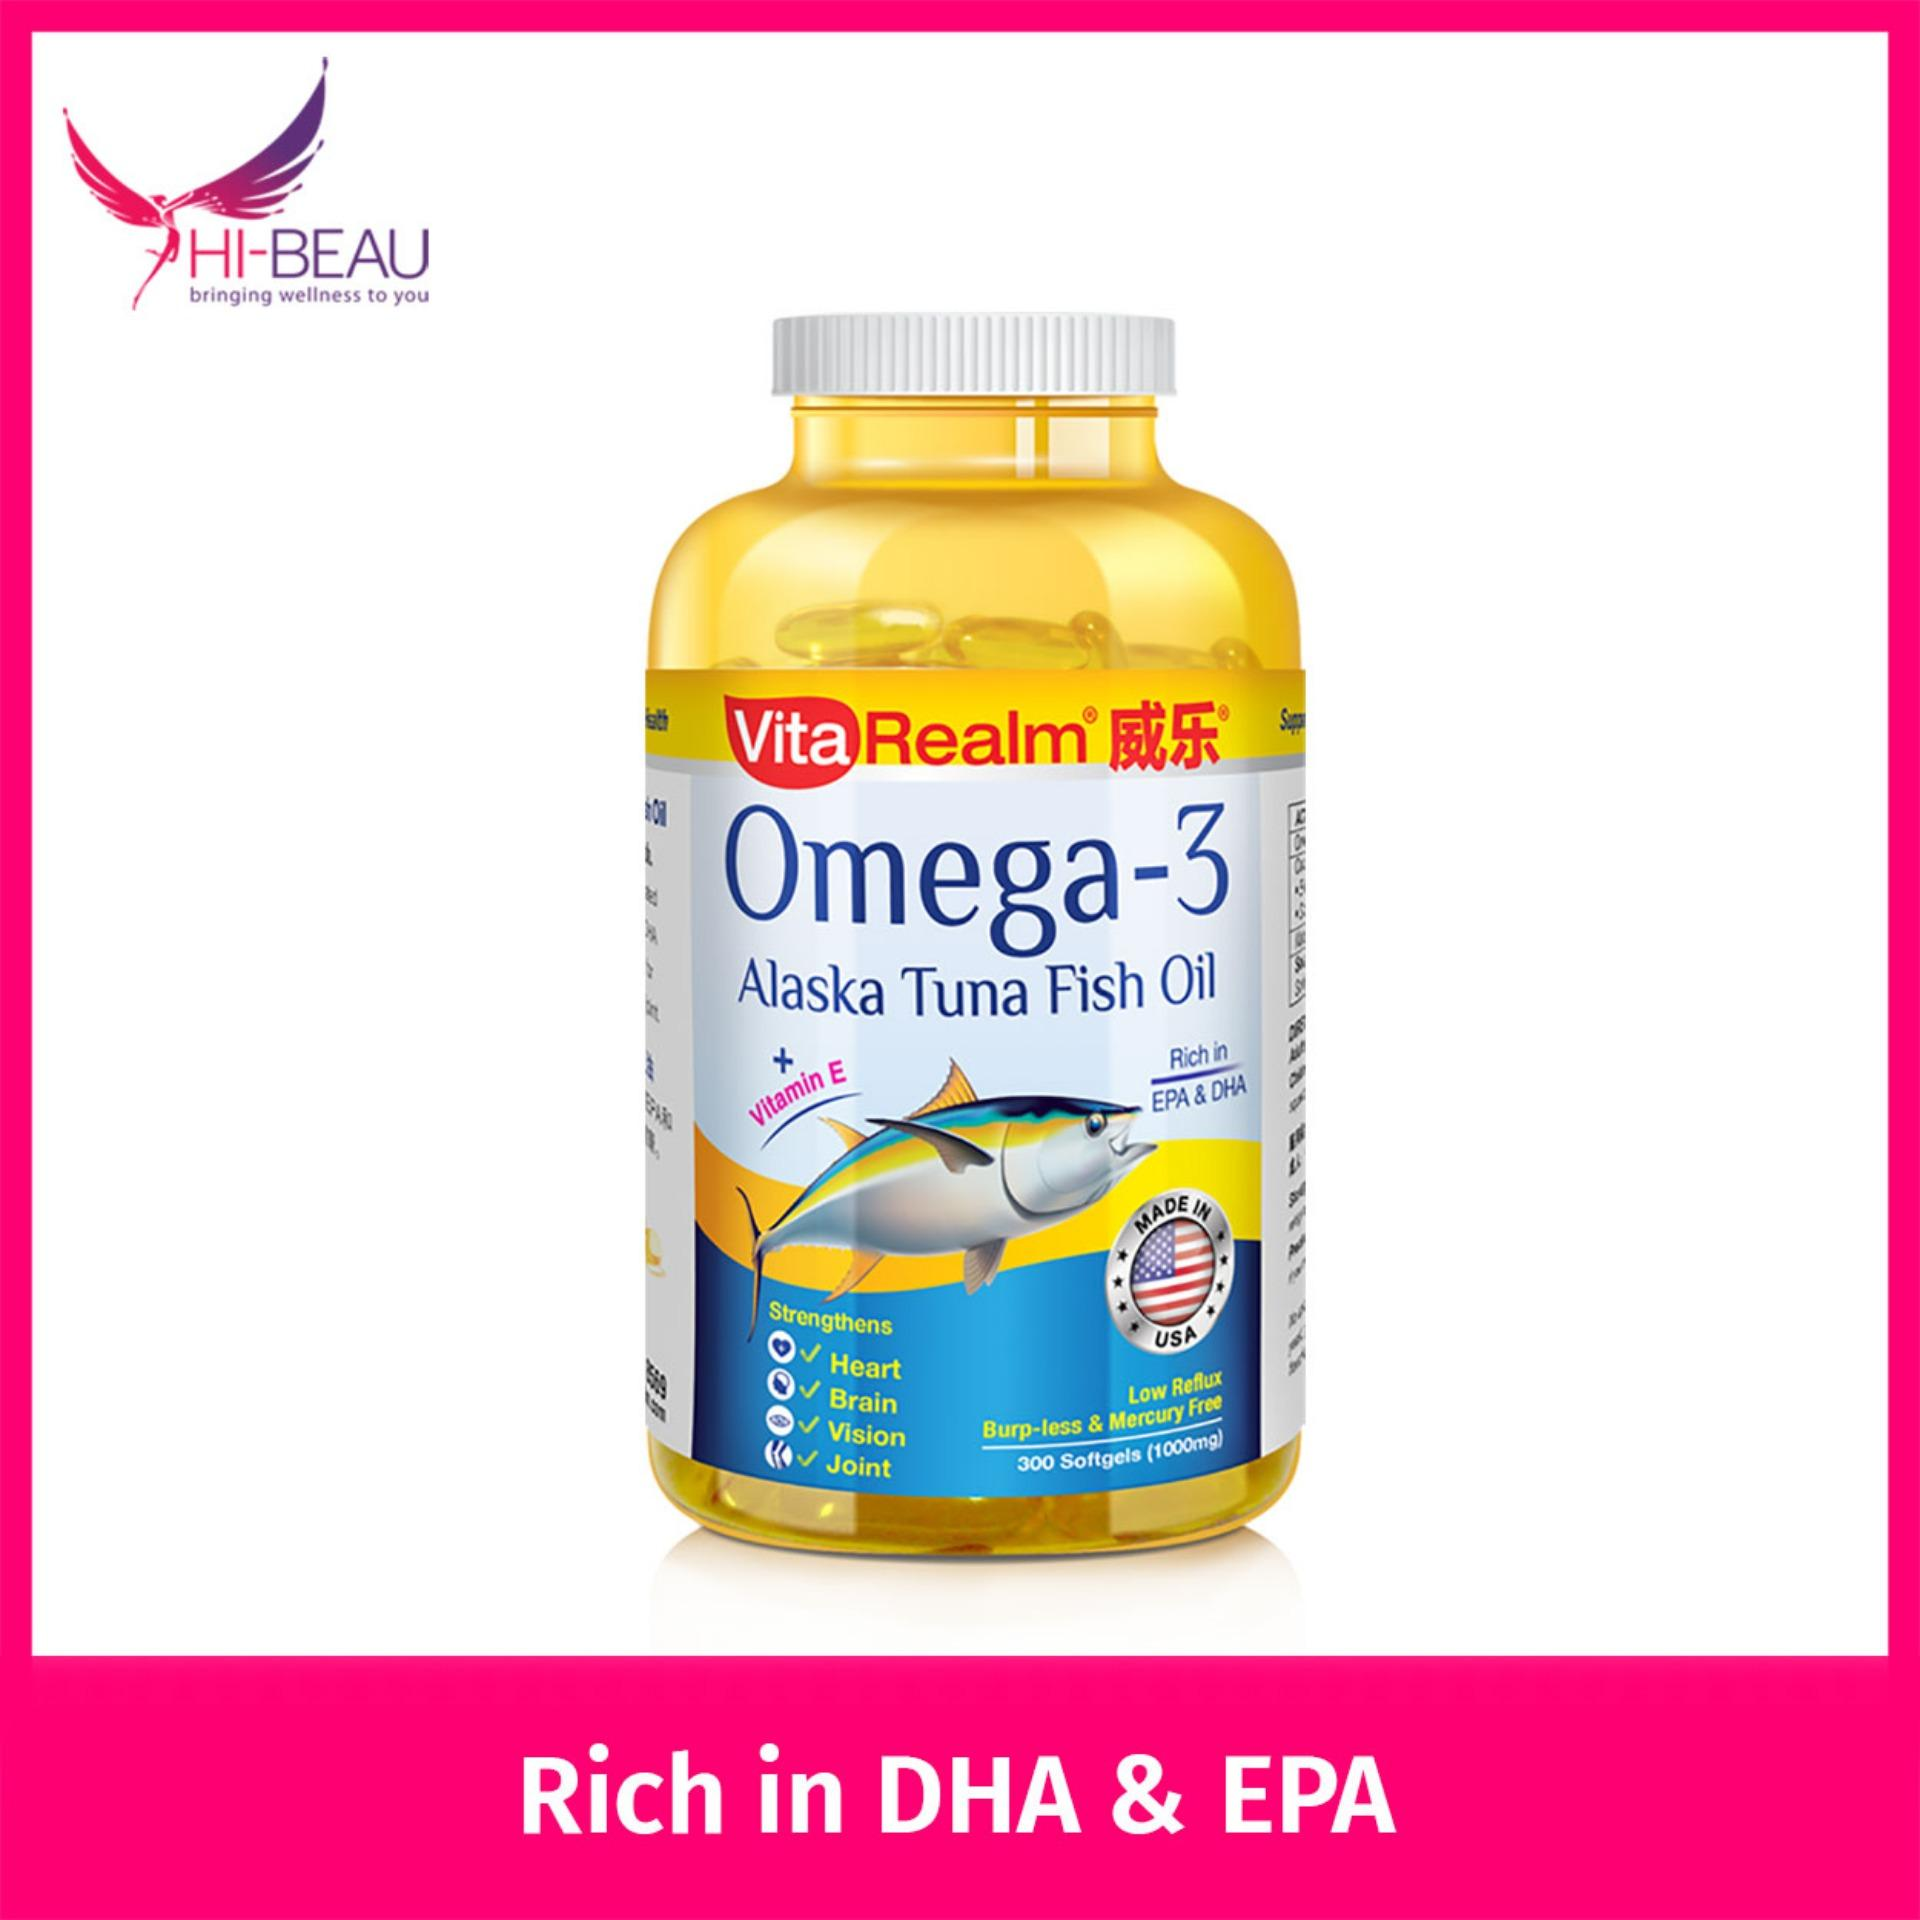 Vitarealm Omega 3 Alaska Tuna Fish Oil Shop